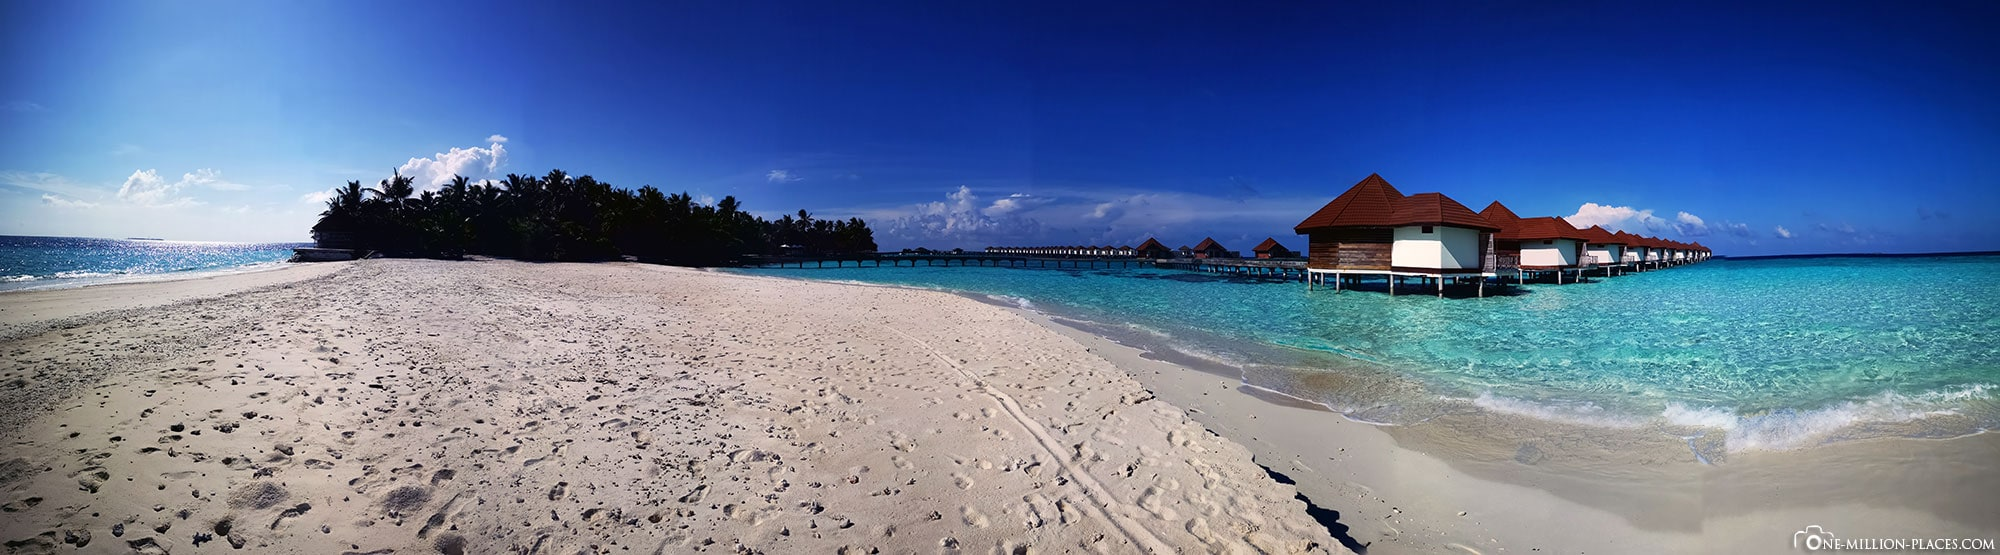 Beach, Palm Trees, Relaxation, Relaxing, All Inclusive, ROBINSON Club Maldives, Maldives, Gaaf Alif Atoll, TravelReport